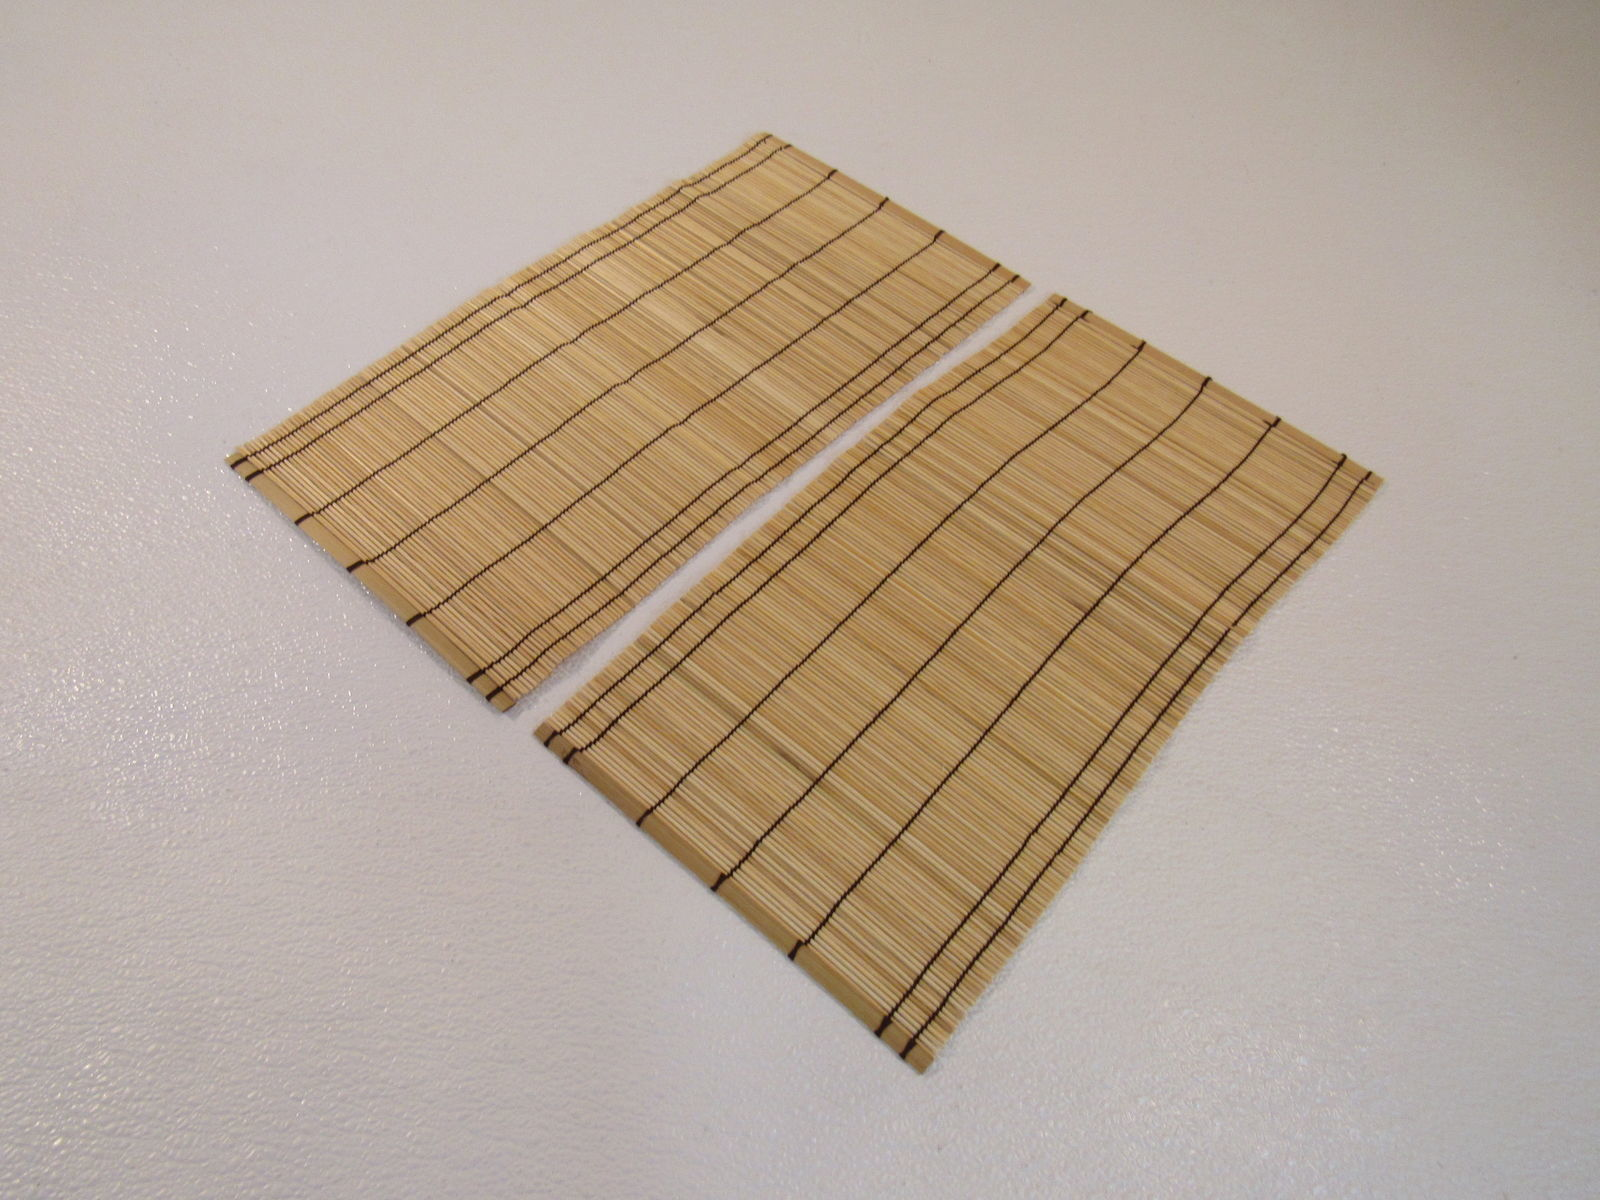 Standard Small Table Runner Set of 2 Asian 17in x 8.75in Vintage Bamboo